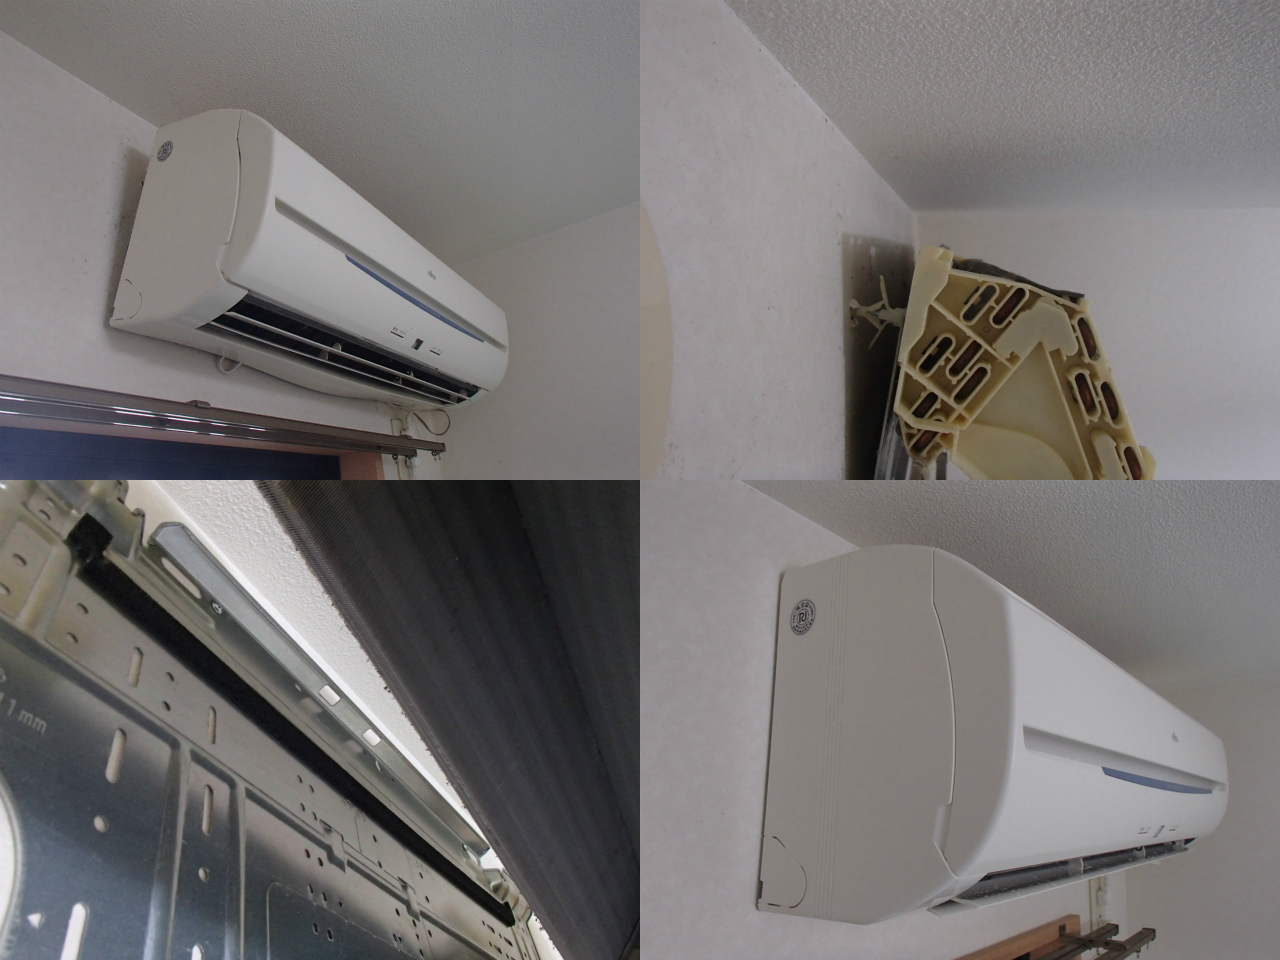 http://ajras.net/images/121024-aircon1.jpg